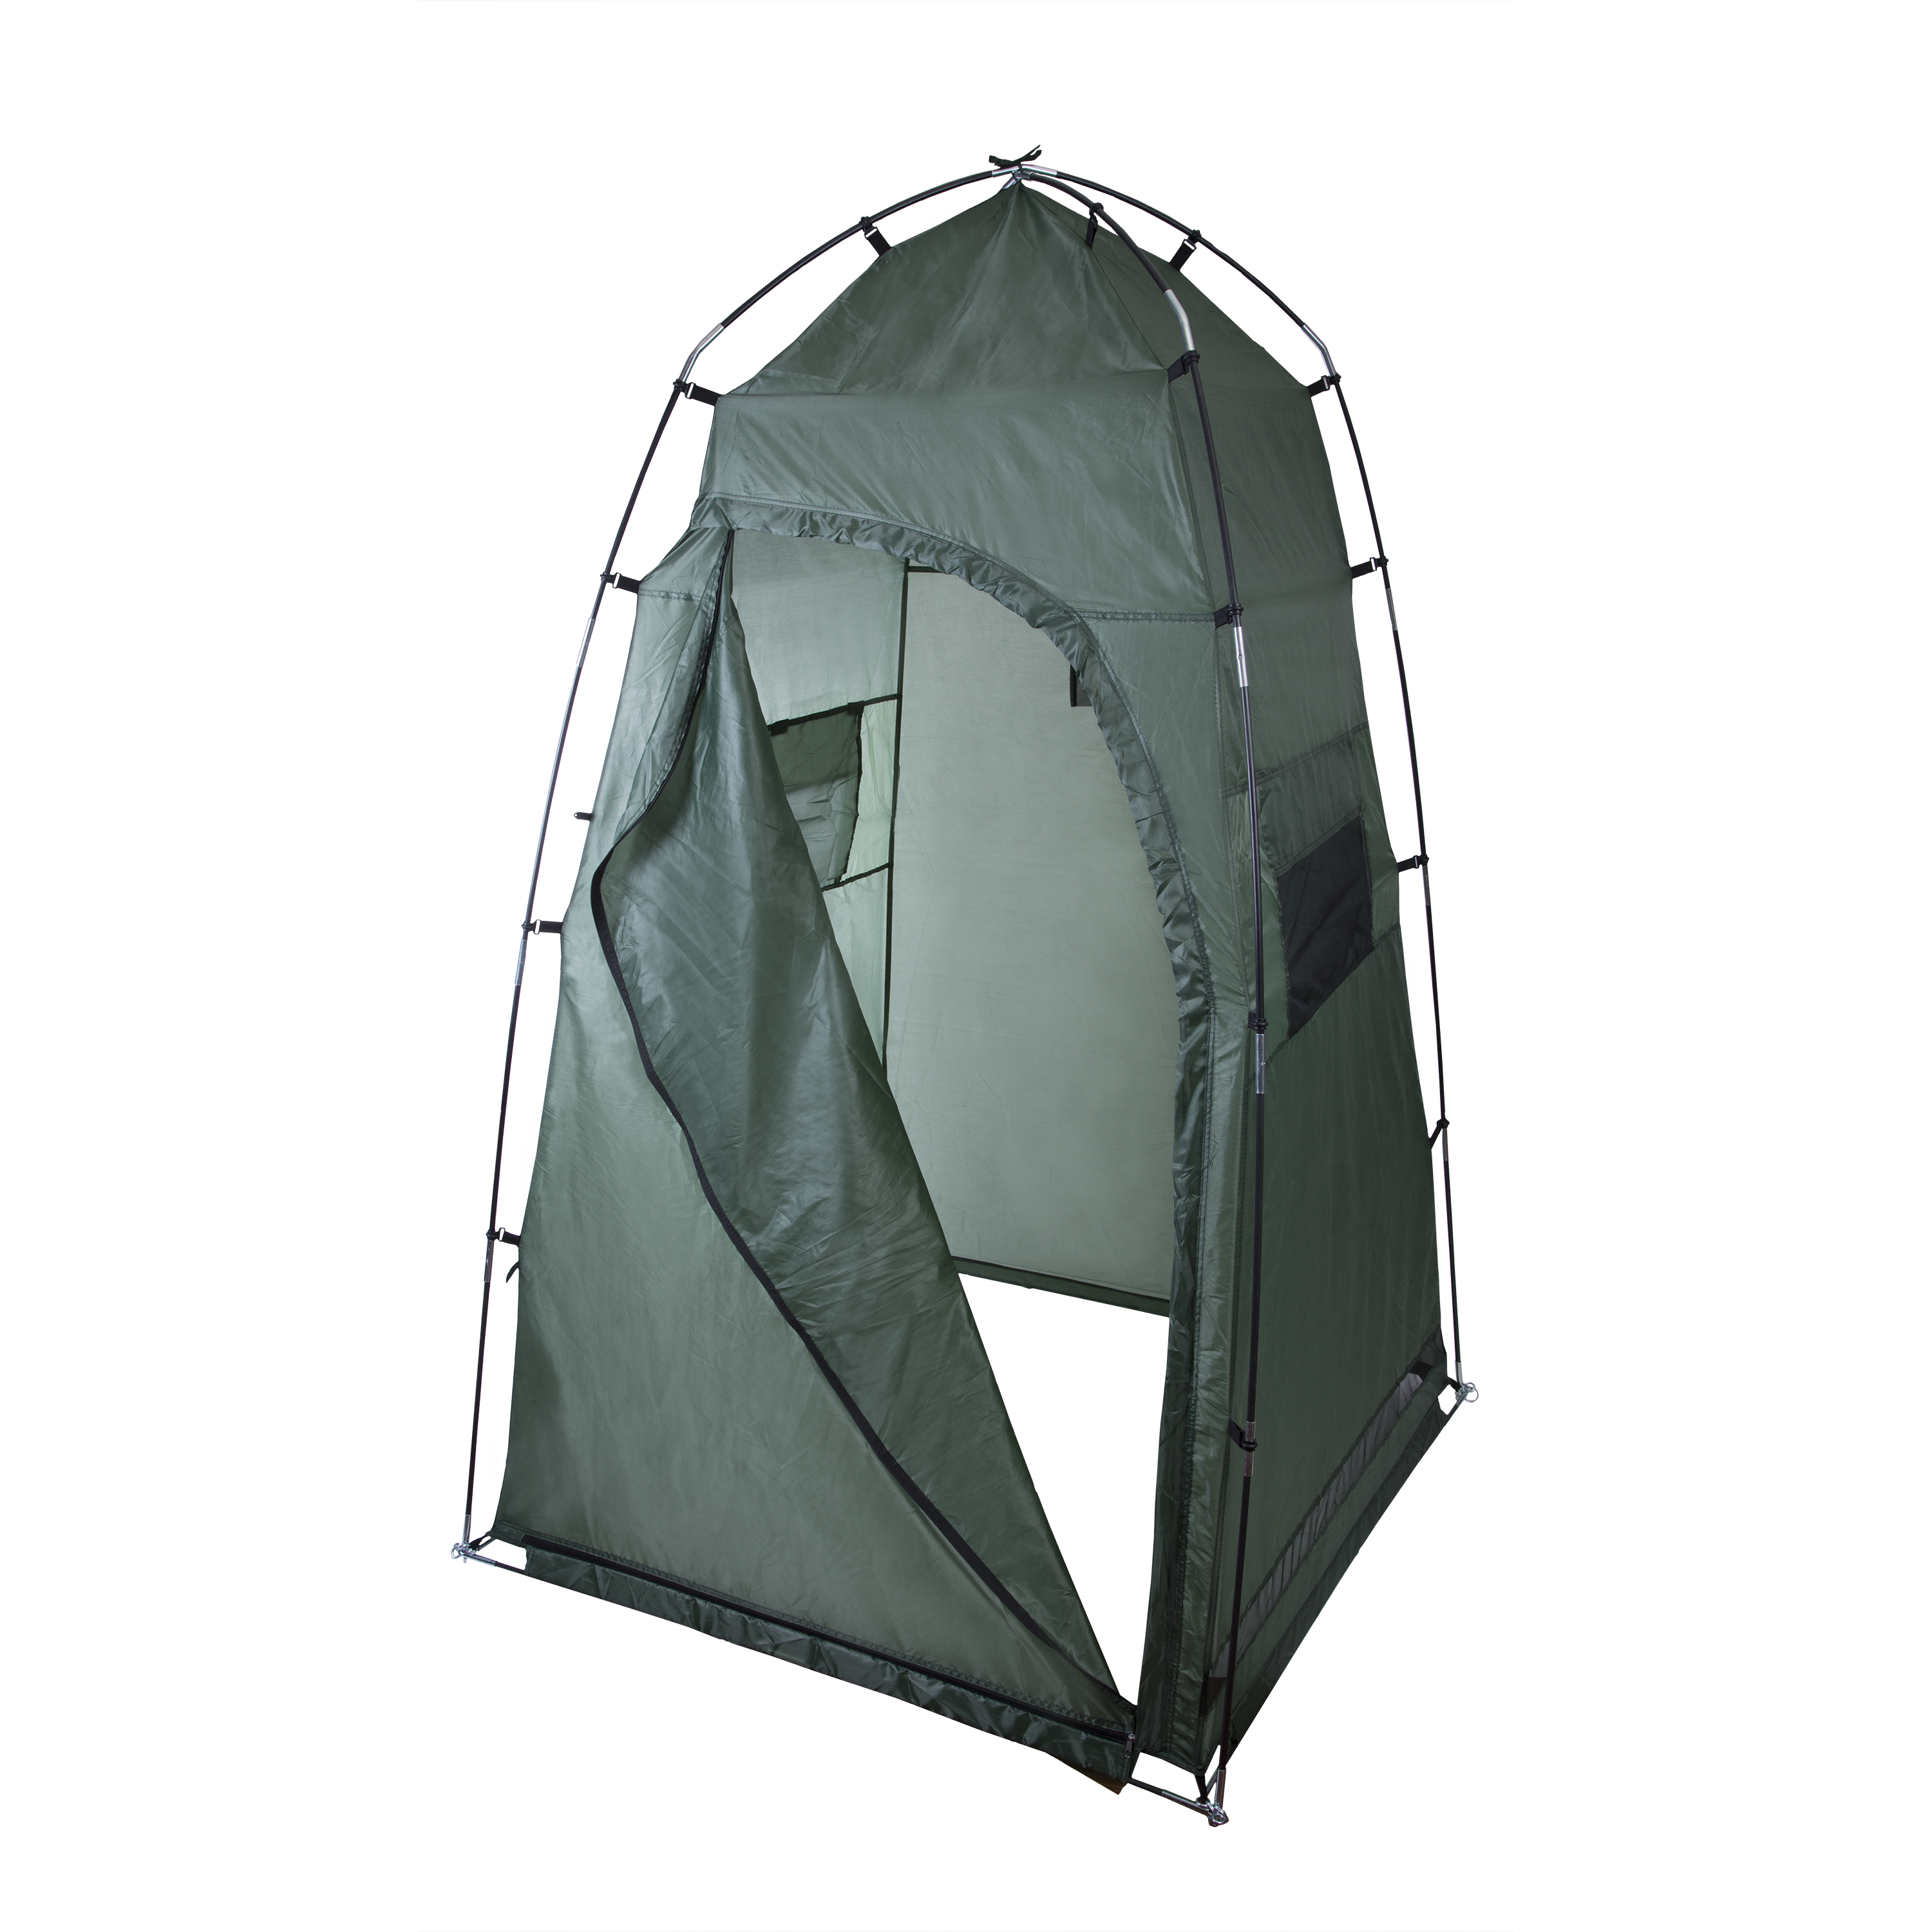 Stansport Cabana Privacy Shelter by Stansport